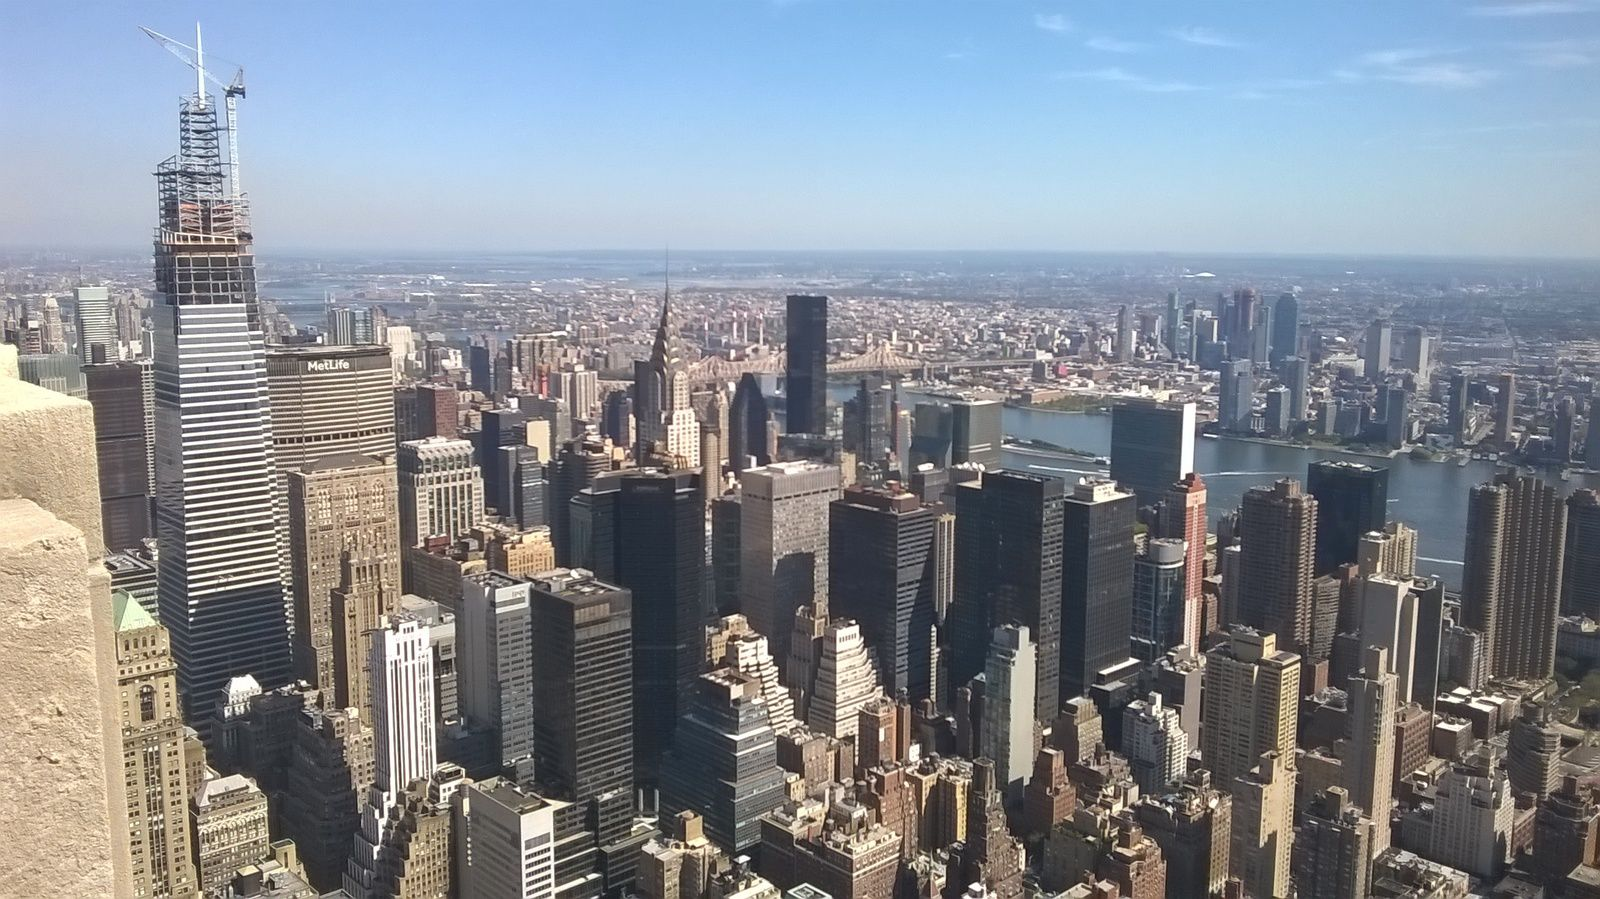 Visite de l'Empire State Building (Vue panoramique).